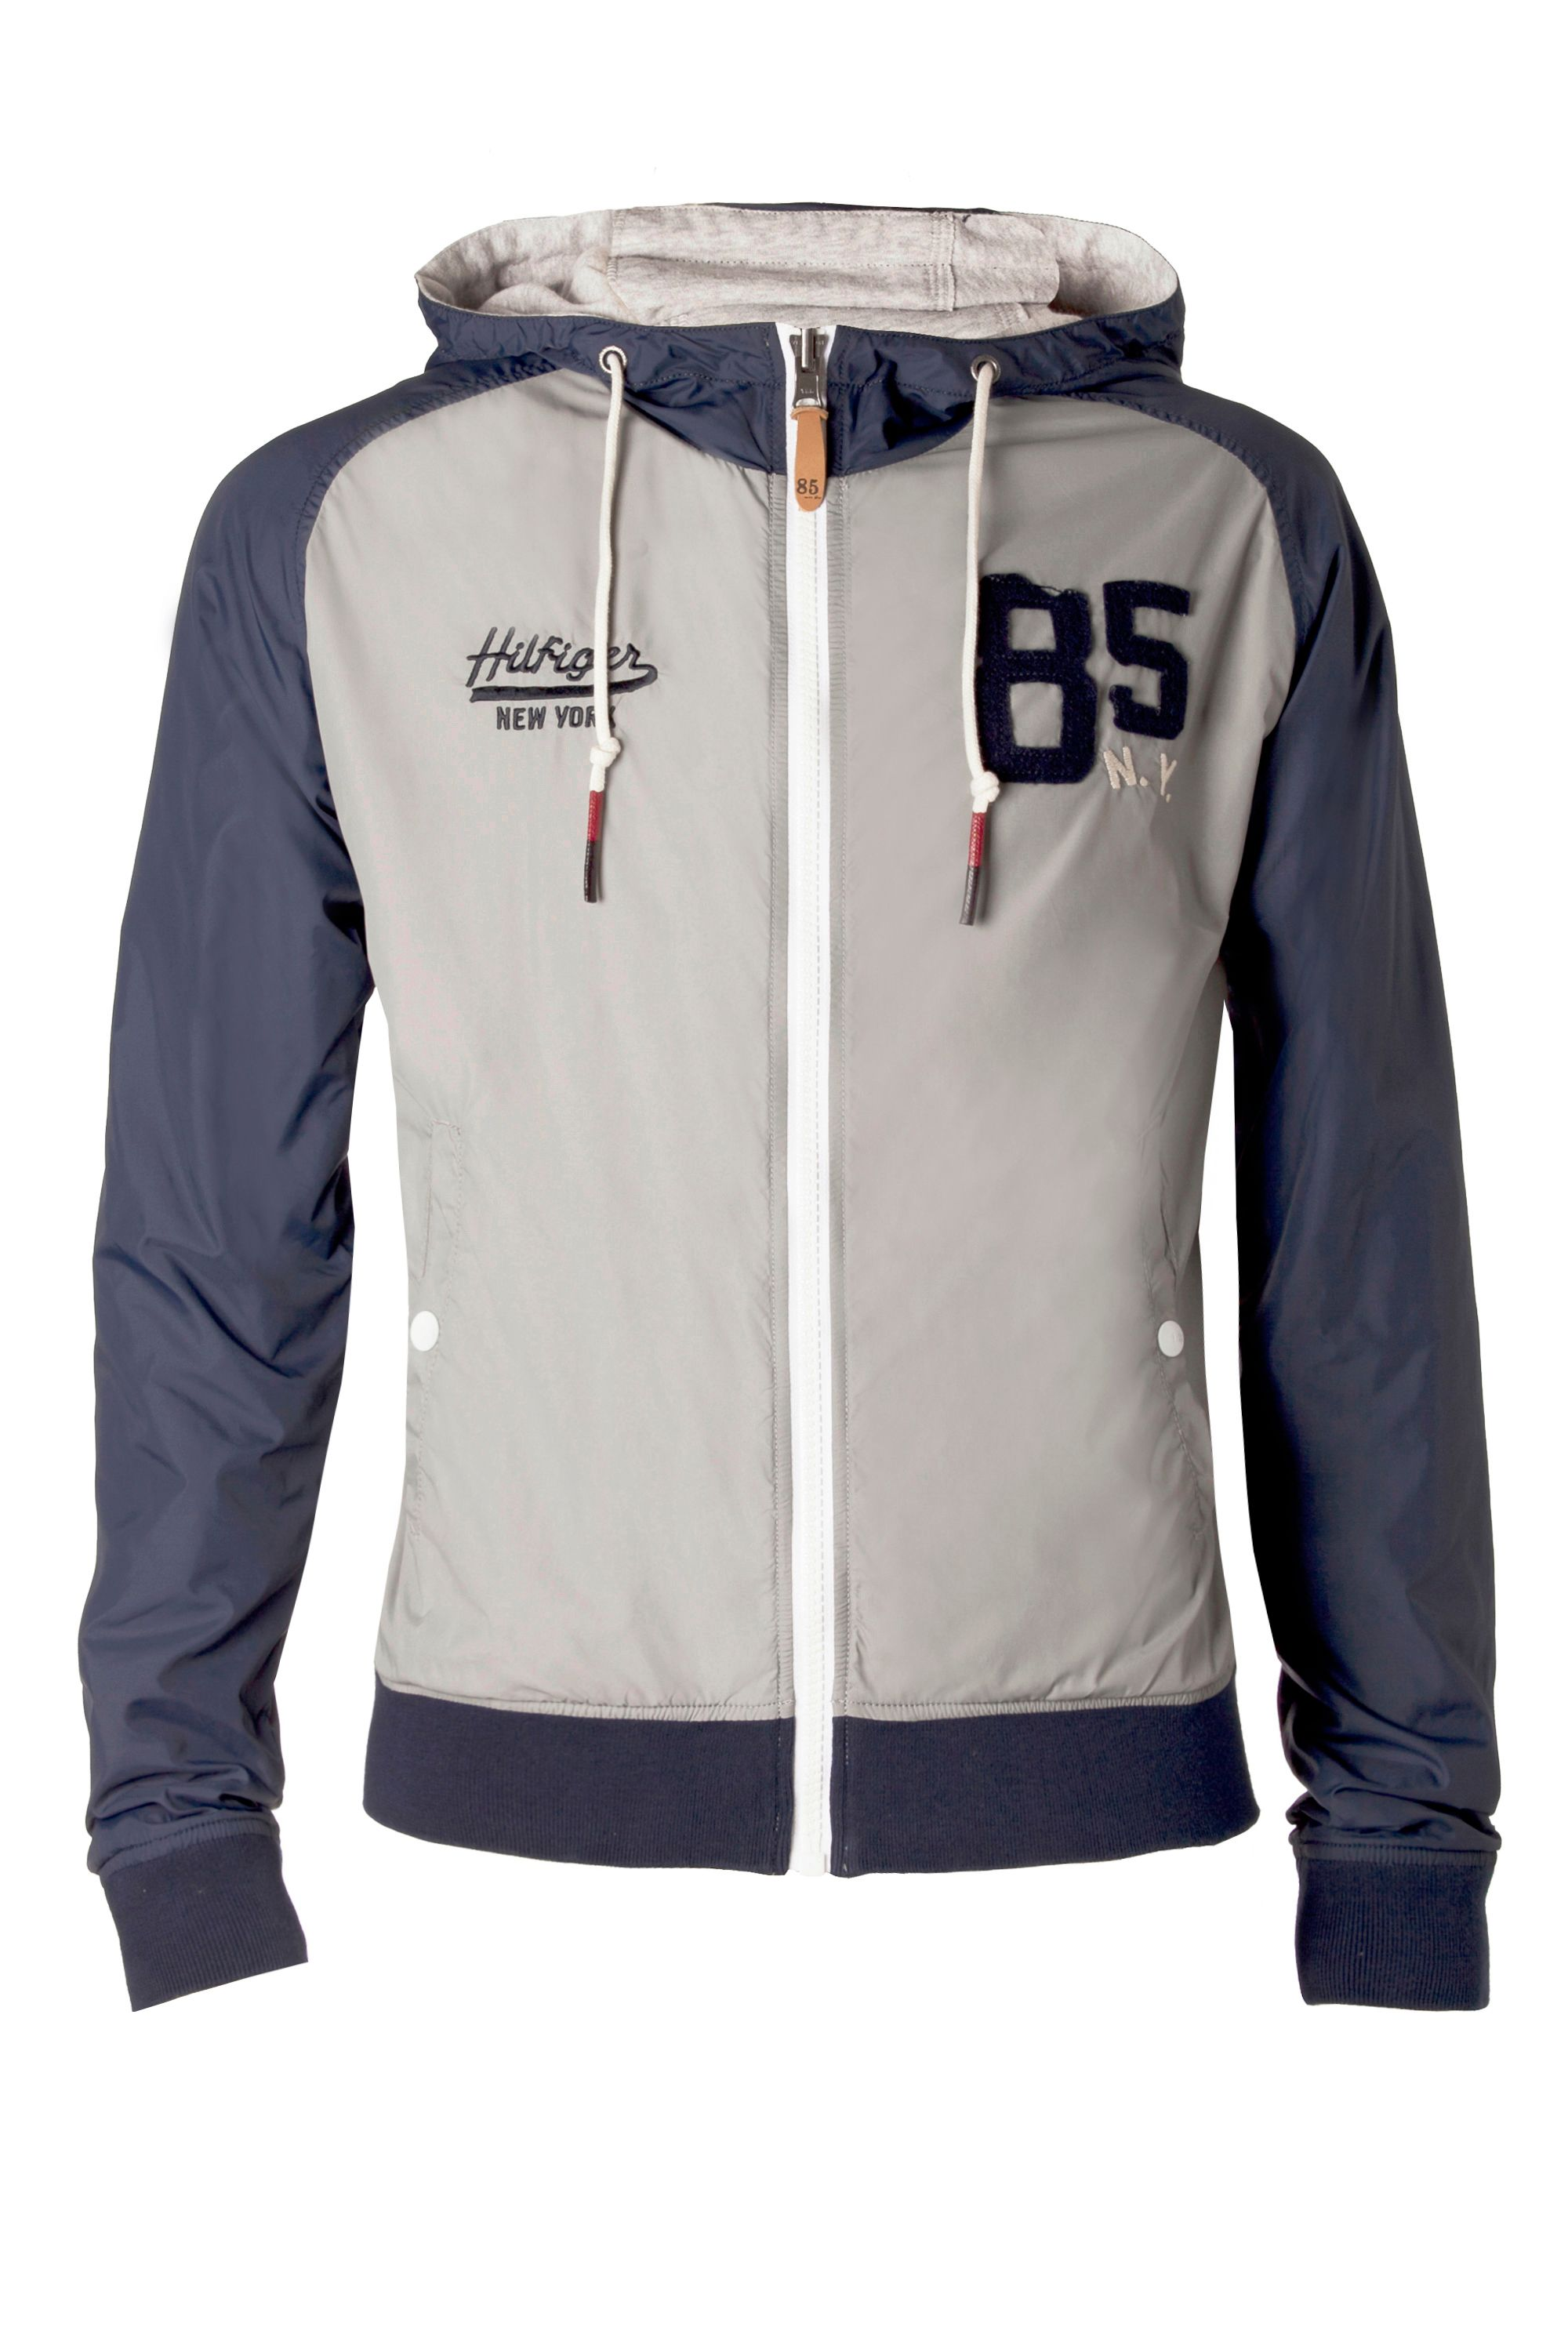 Boston reversible jacket